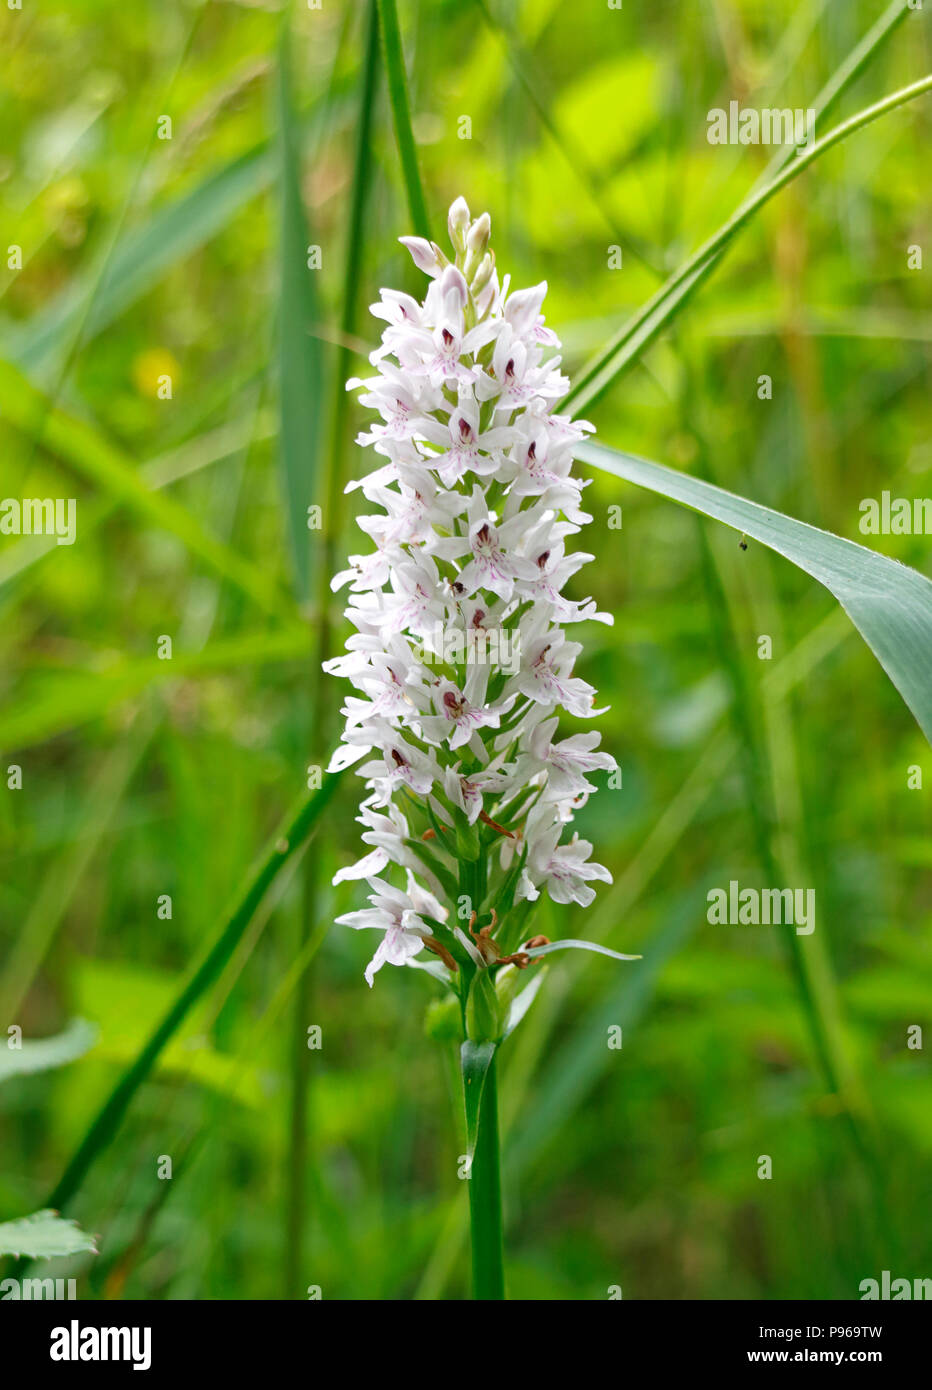 A flower spike of a Heath Spotted-orchid, Dactylorhiza maculata, on Southrepps Common, Southrepps, Norfolk, England, United Kingdom, Europe. - Stock Image